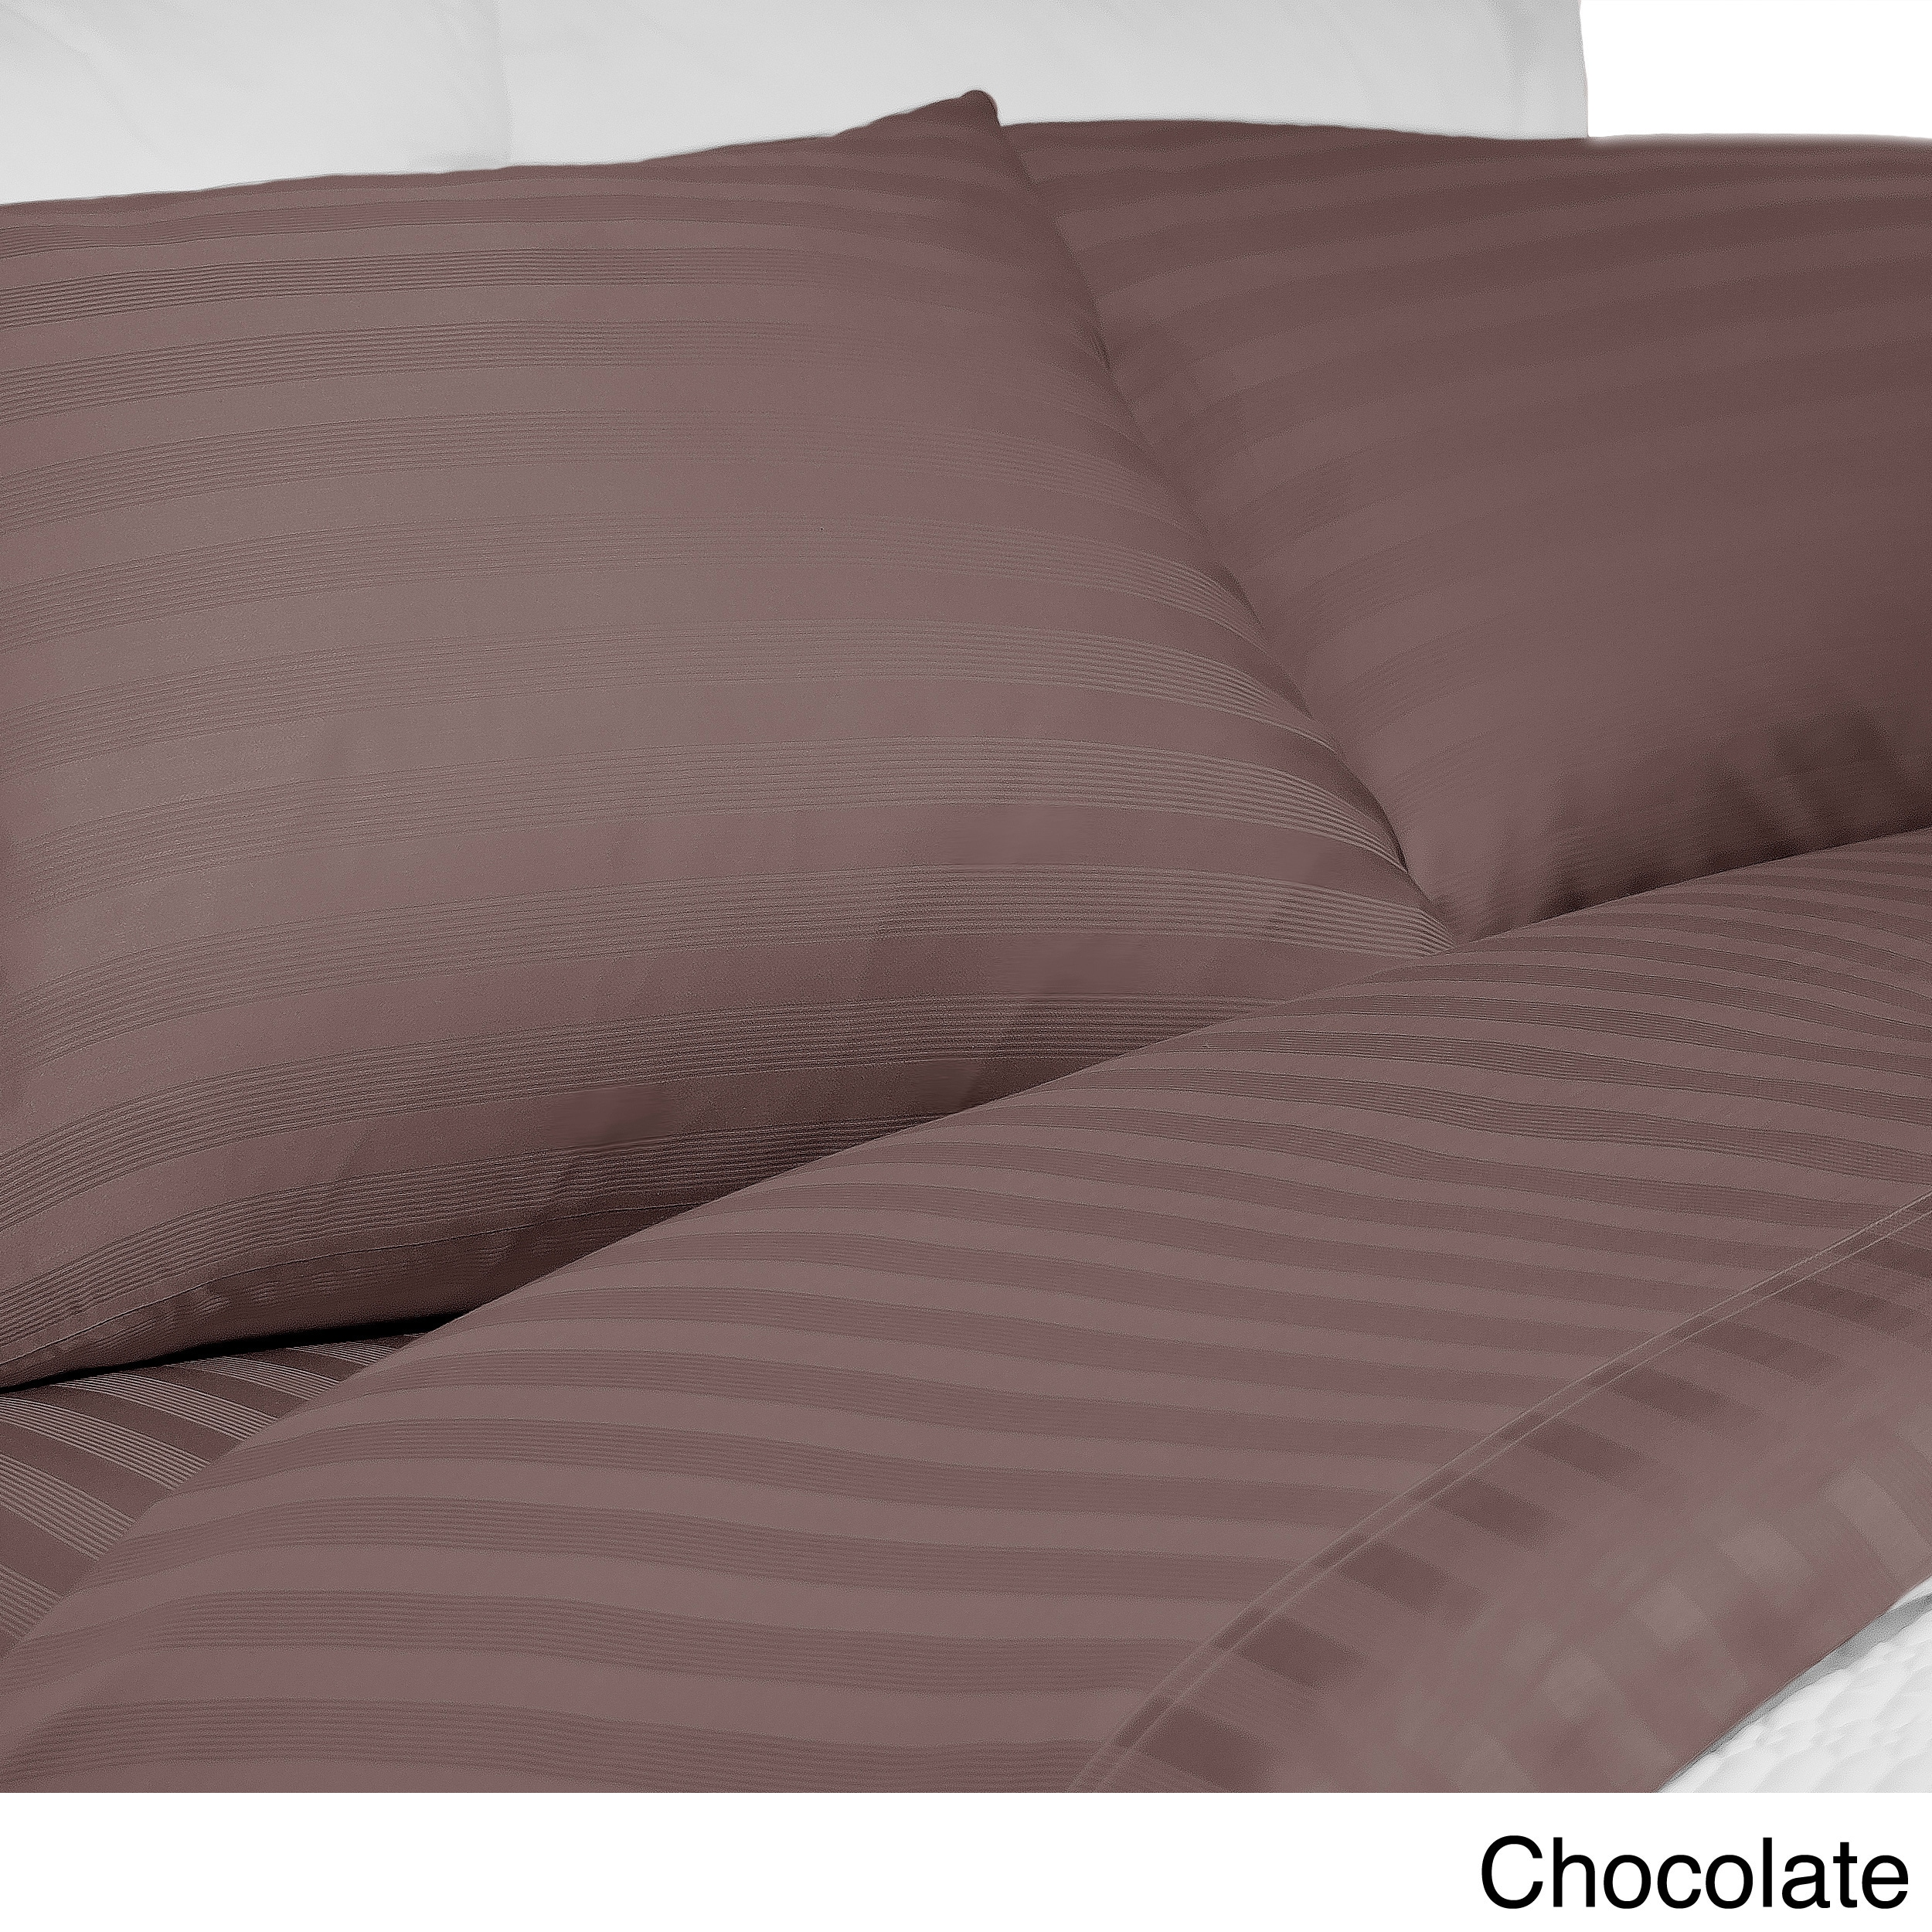 bamboo elle sheets shipping sheet product count bath overstock thread bed rayon set free today bedding from